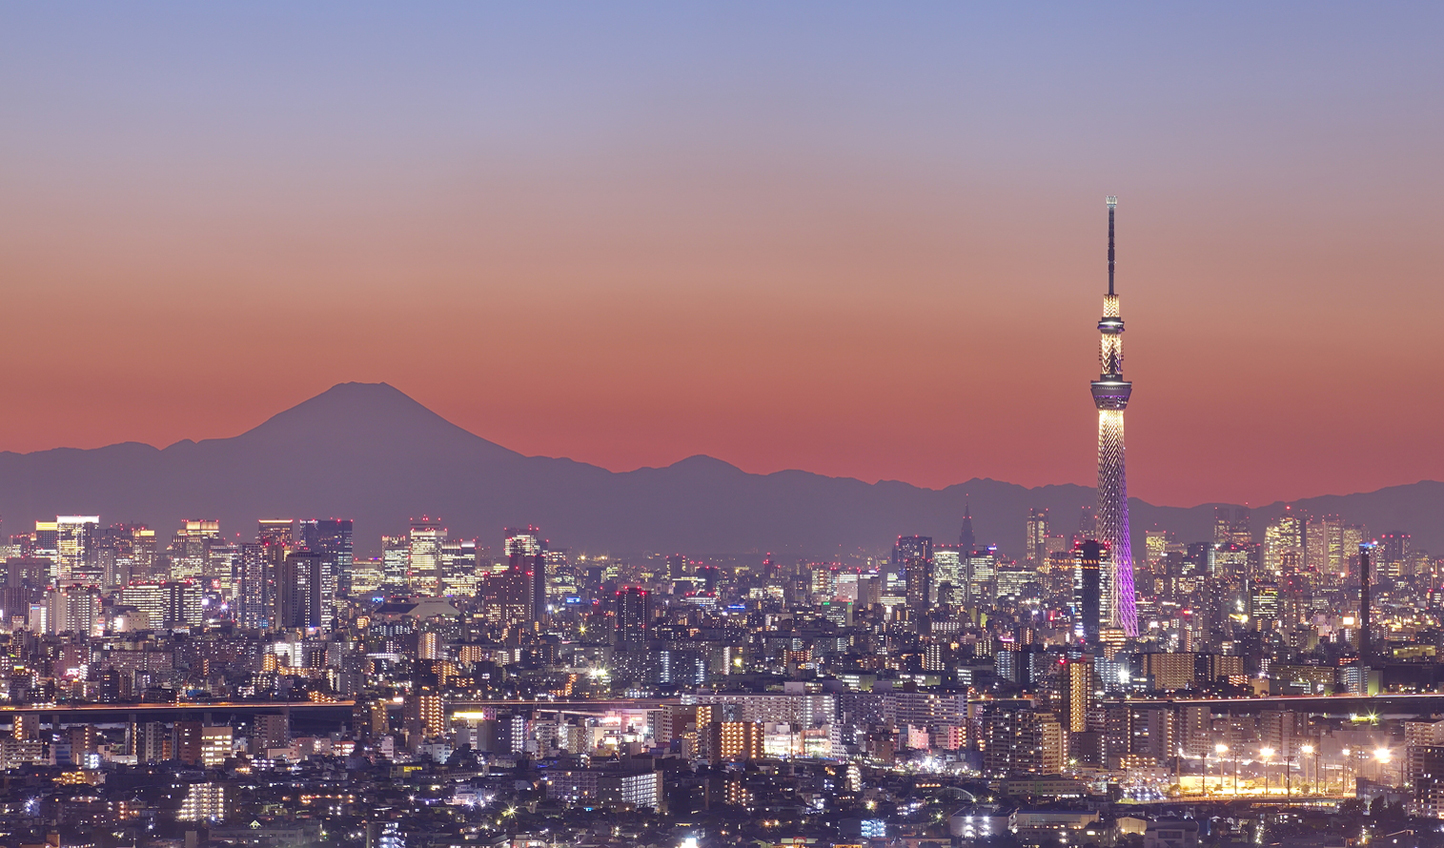 Kickstart your trip amid the bright lights of Tokyo